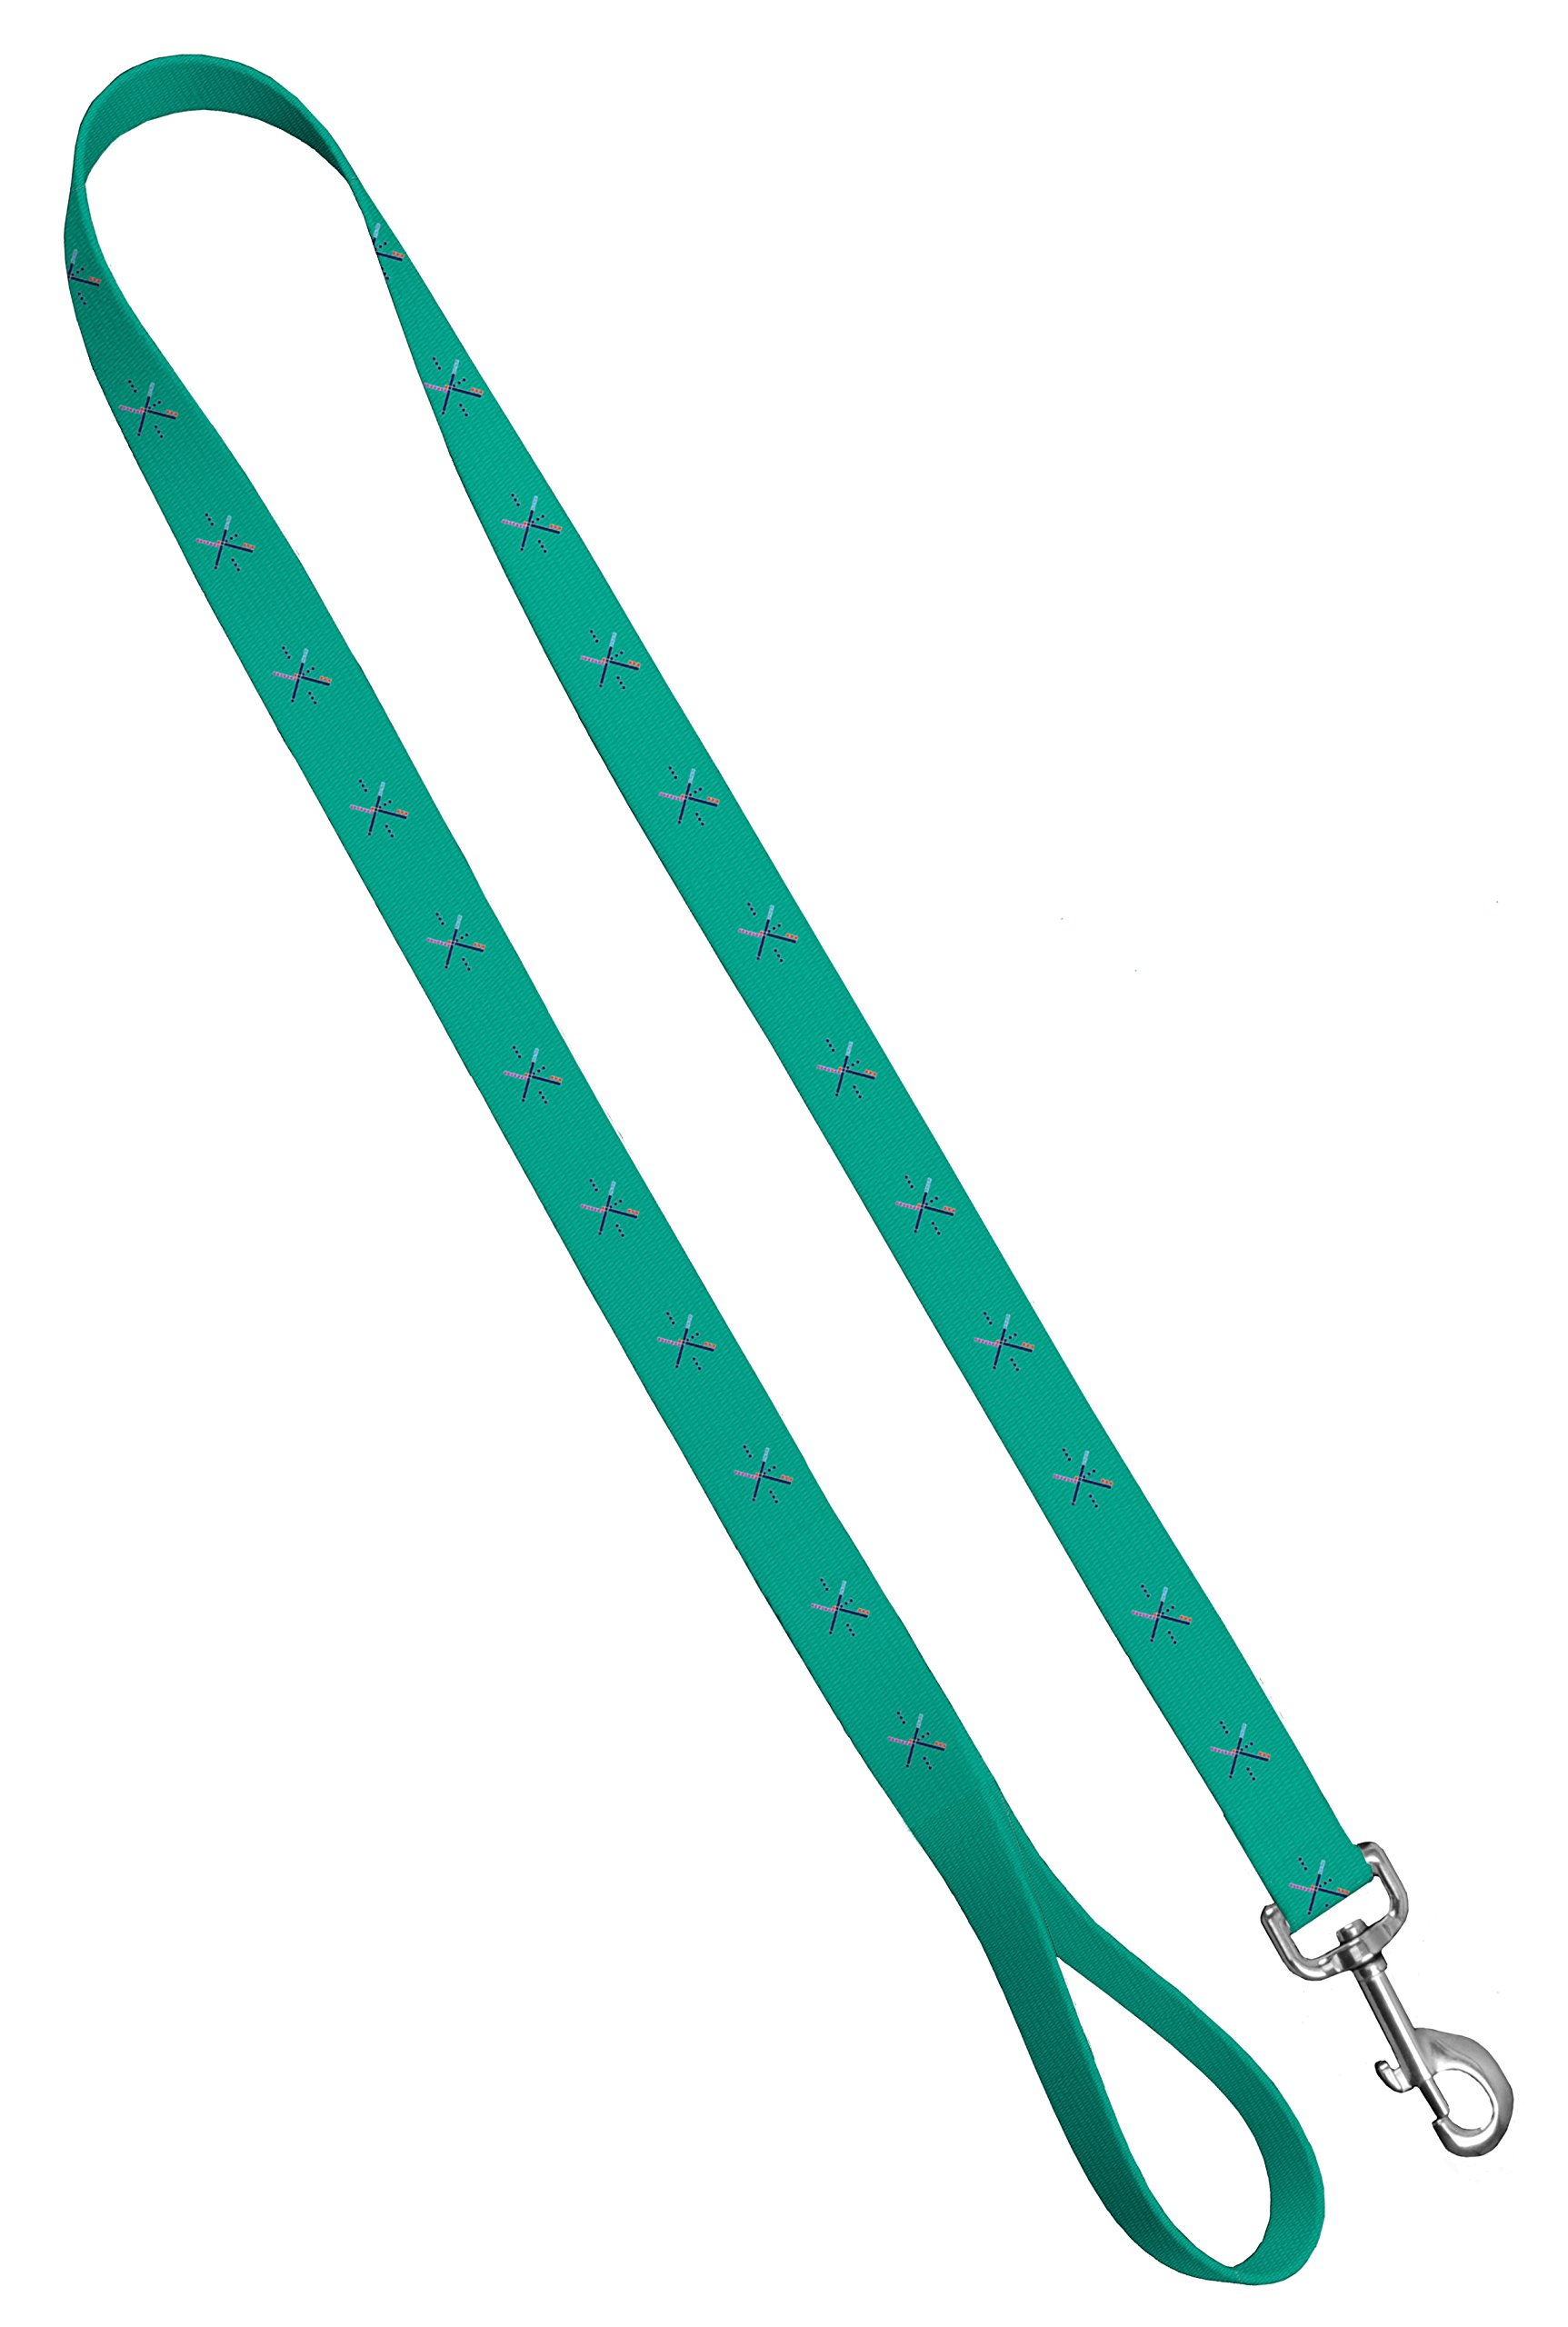 Moose Pet Wear Deluxe Dog Leash - Patterned Heavy Duty Pet Leashes, Made in the USA - 1 Inch x 6 Feet, PDX Carpet